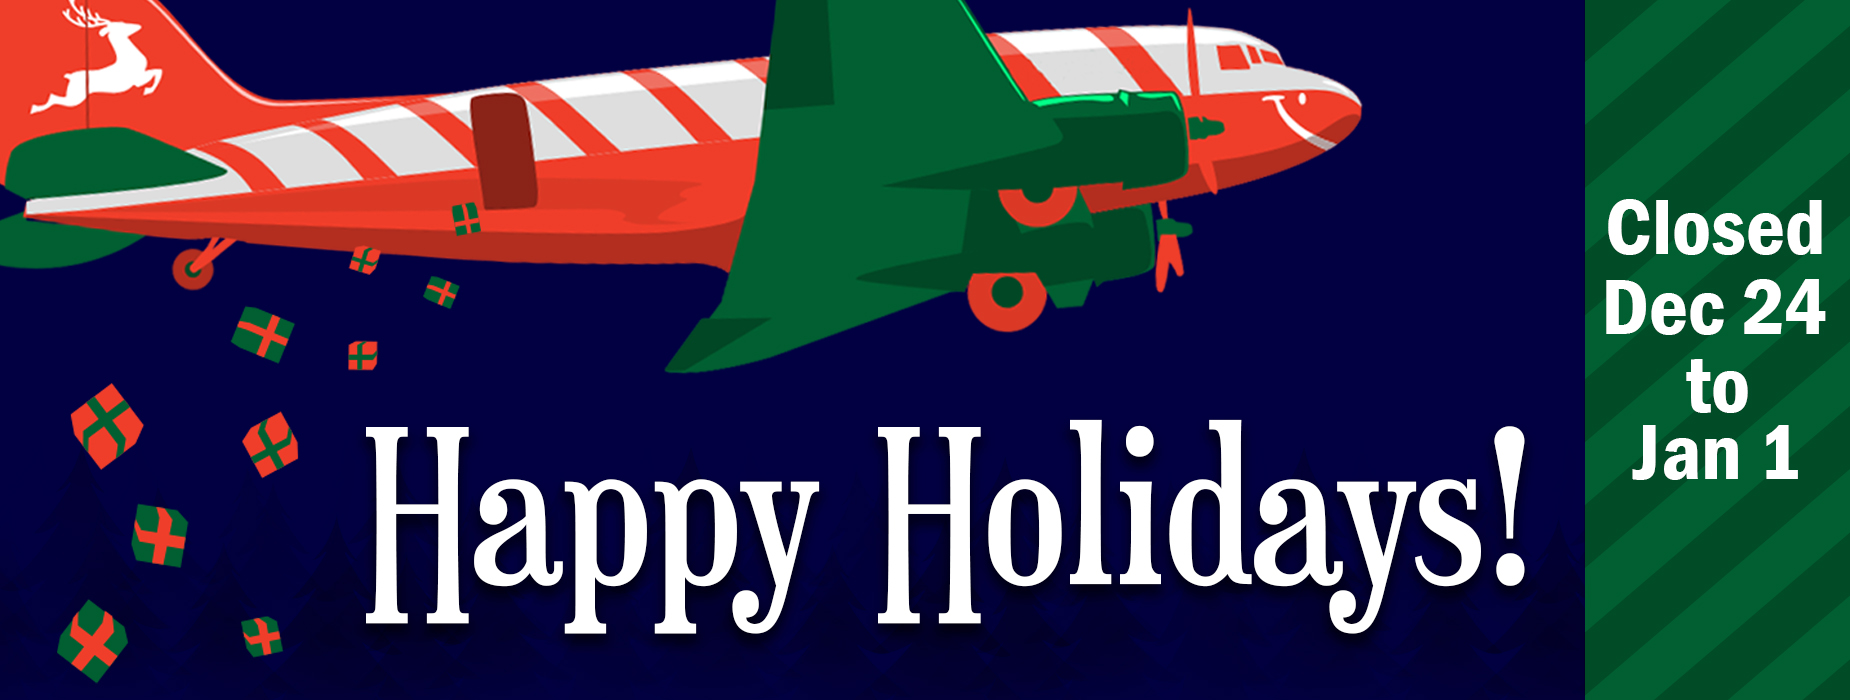 Poster for - Happy Holidays